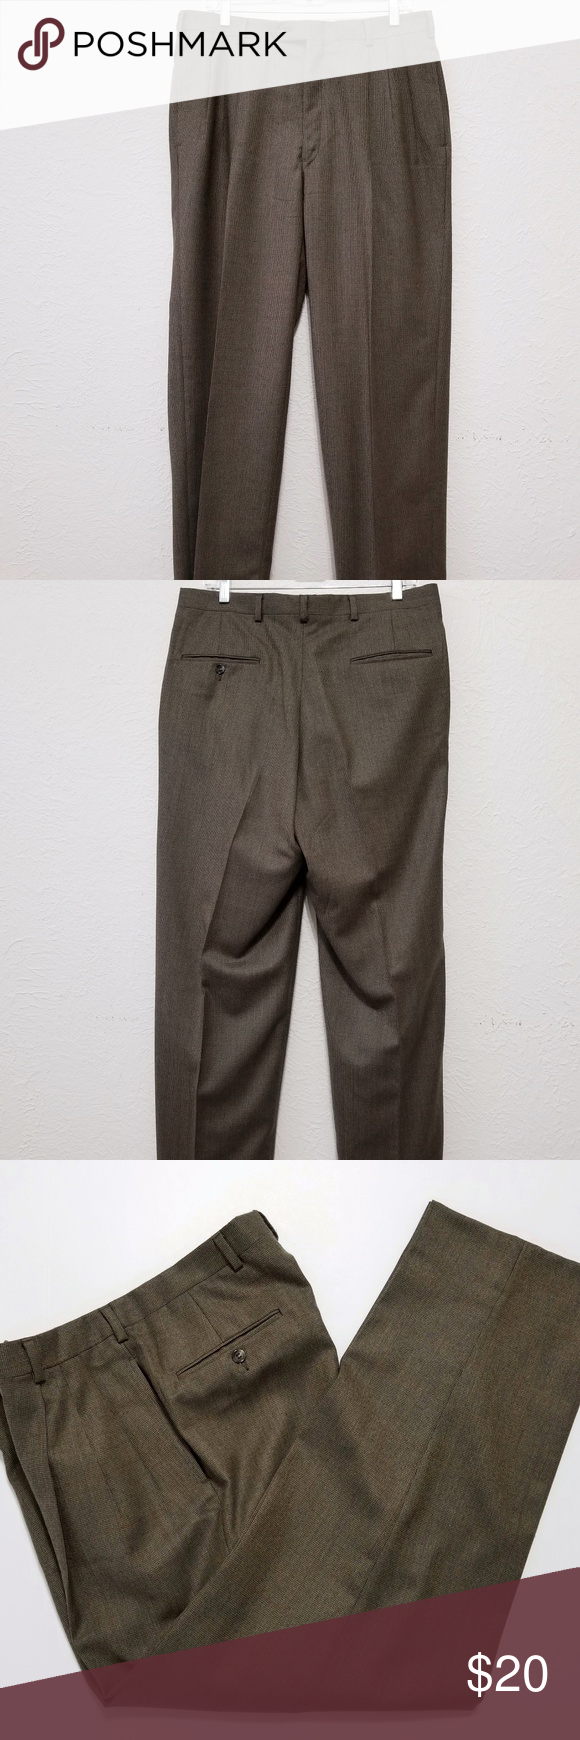 Austin Reed Mens Dress Pants Size 34x31 Brown Wool Austin Reed Men S Dress Pants Size 34x31 Brown Wool Tweed Slacks Mens Dress Pants Dress Pants Pants